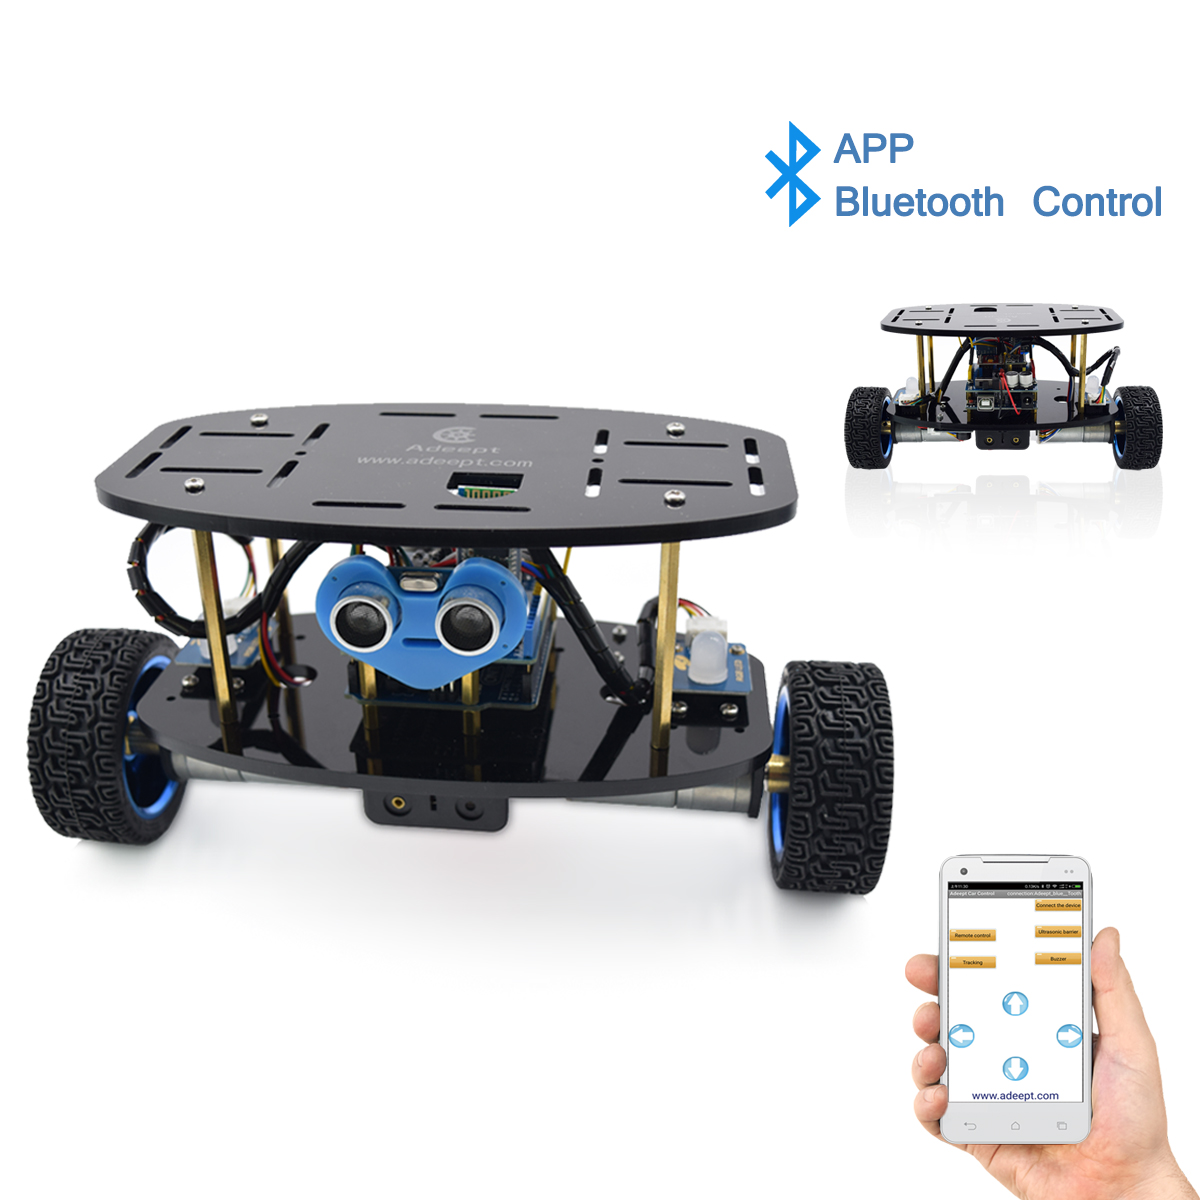 Adeept 2-Wheel Self-Balancing Upright Car Robot Kit for Arduino UNO R3, MPU6050 Accelerometer Gyroscope Sensor + TB6612 Motor Driver